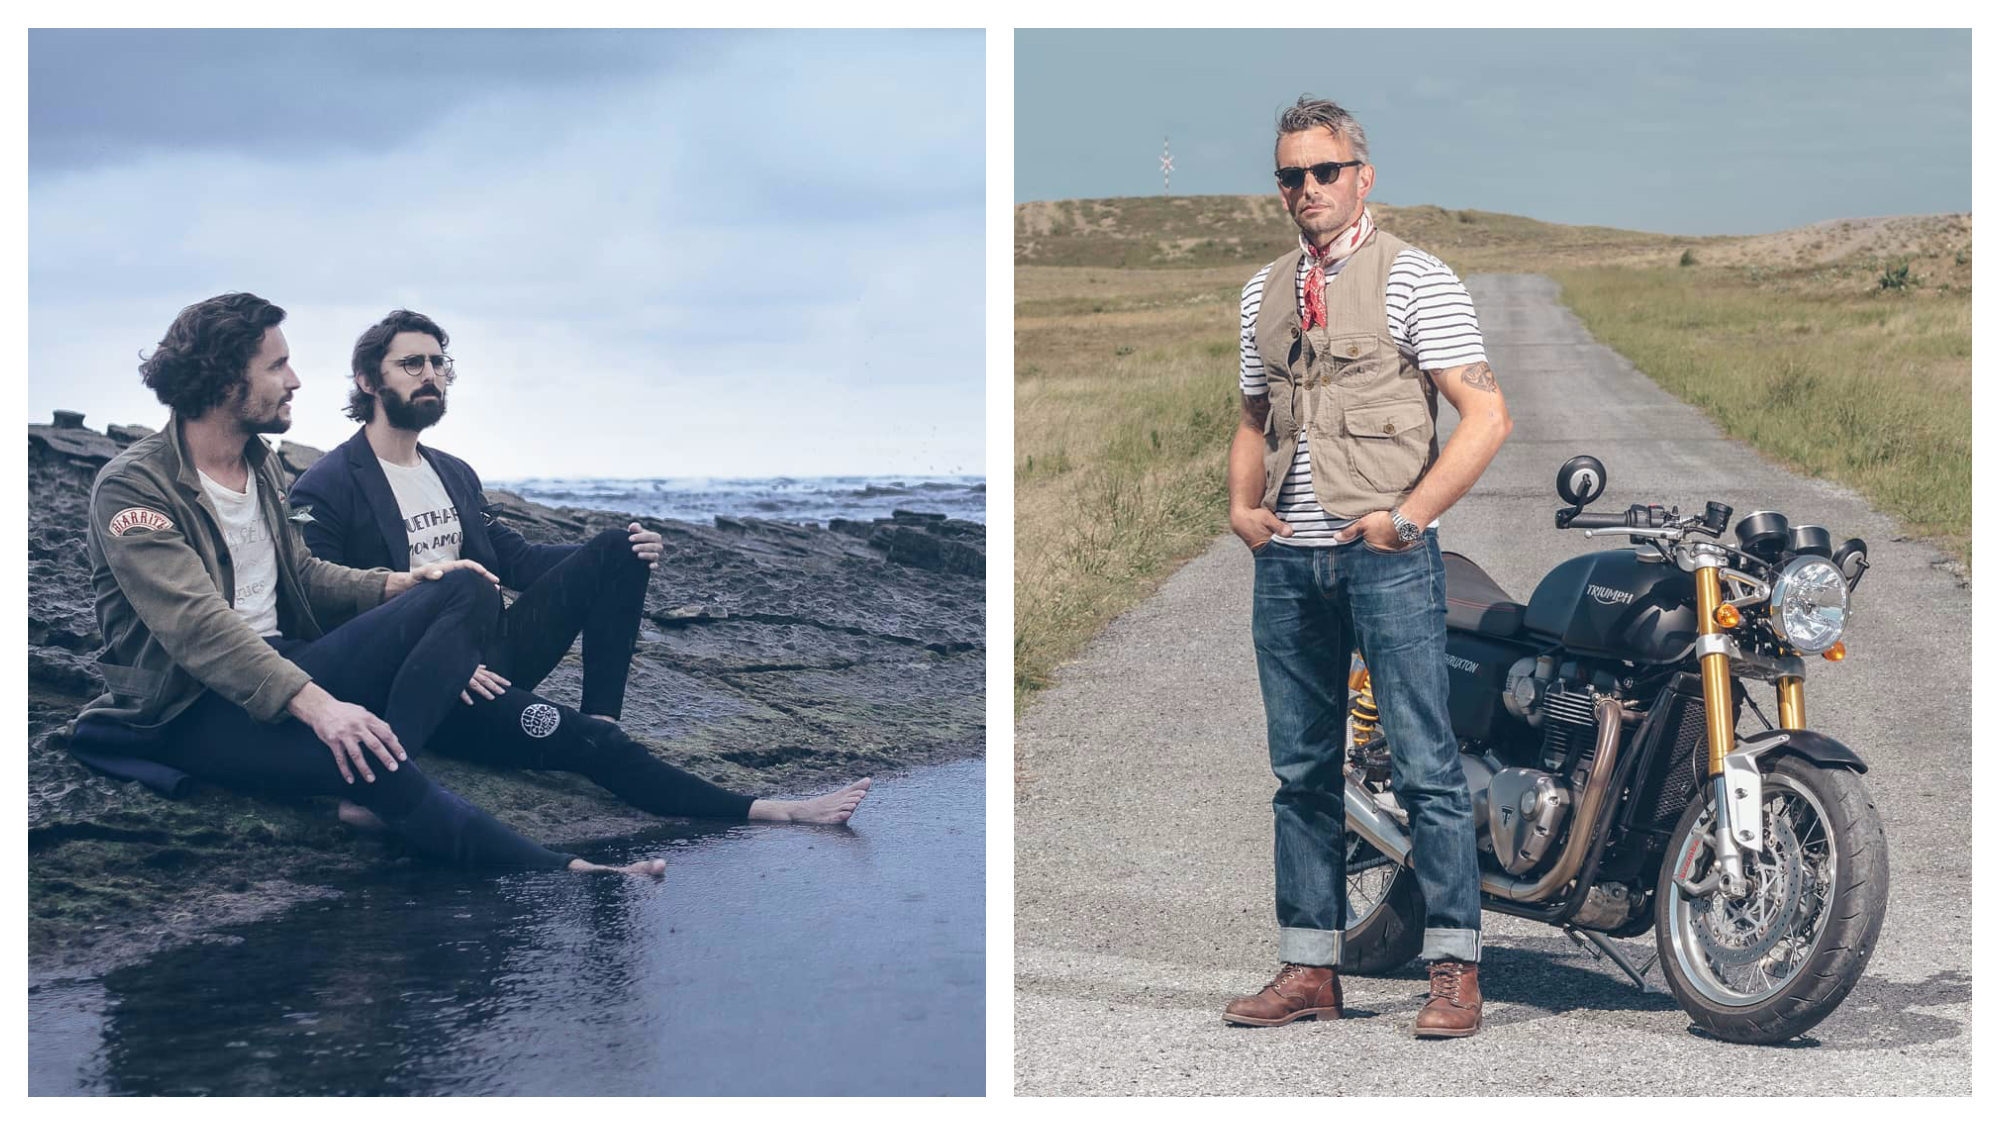 Two male models sat with their feet in the sea, wearing jackets and tight blue jeans (left) and a man standing by his motorbike in the middle of the road wearing blue jeans, a khaki waistcoat and red necktie (right) from French menswear brand L'Egoïste.